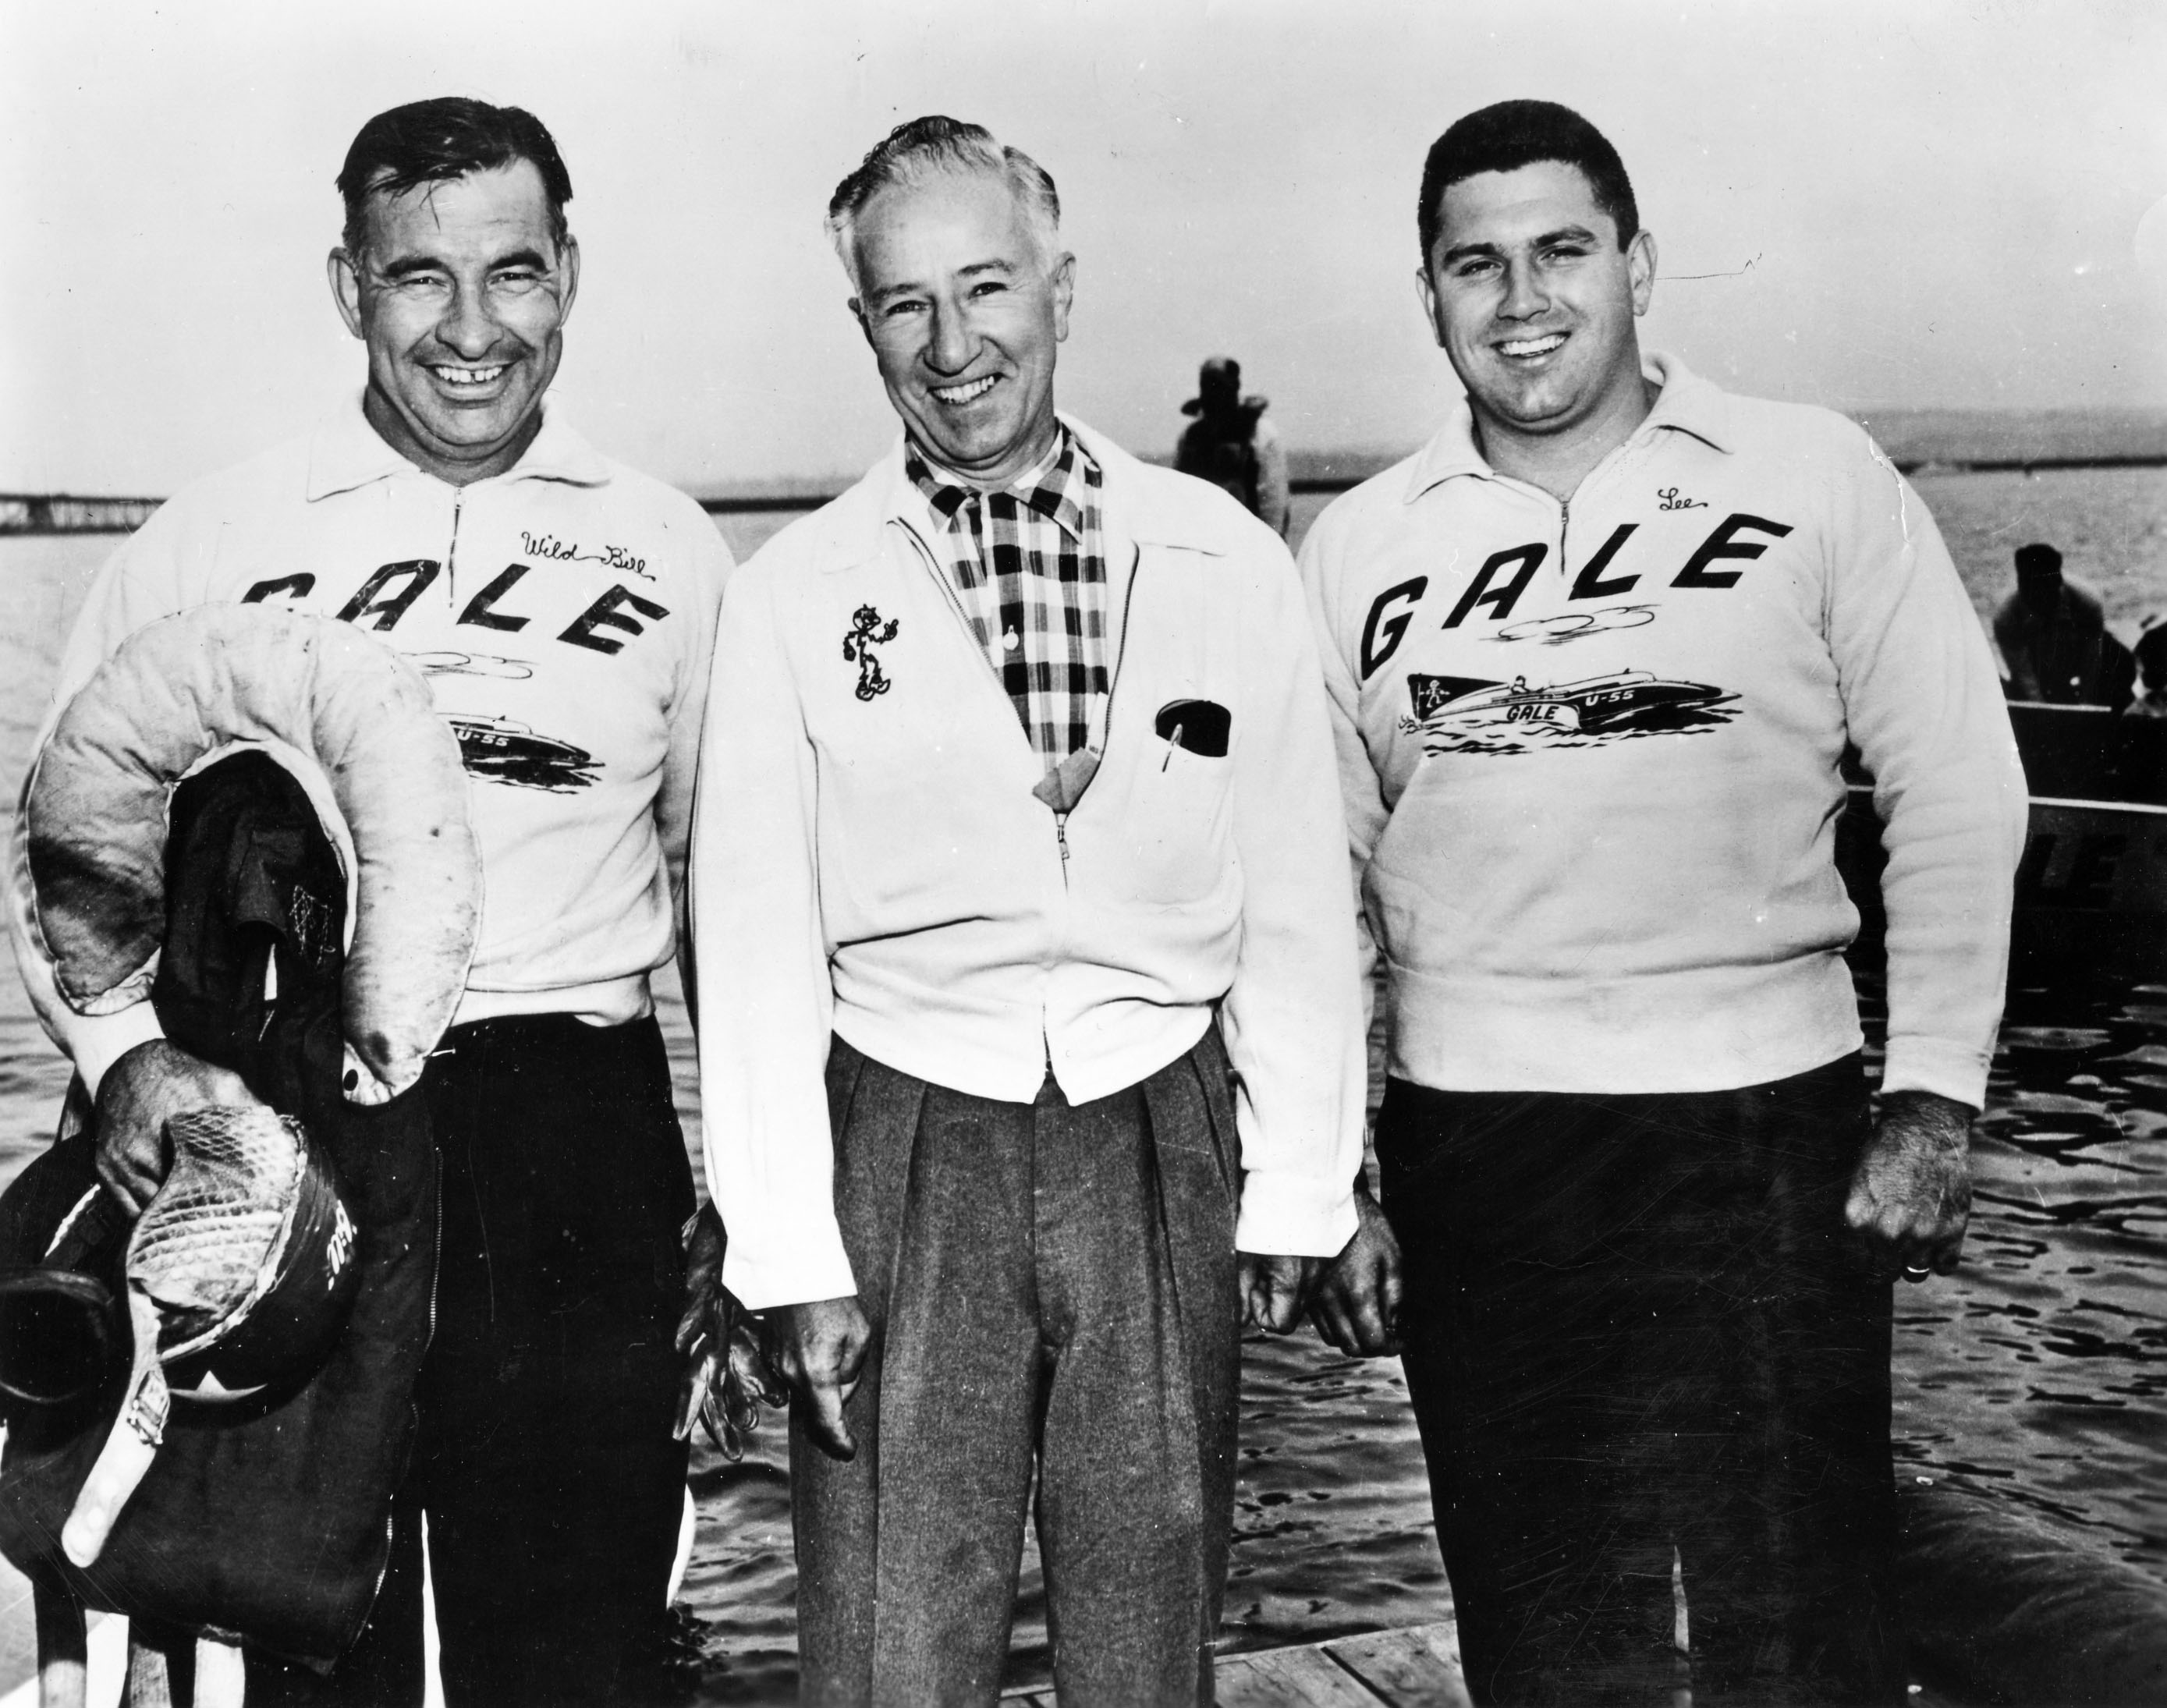 The Gale team of Bill Cantrell (left), Joe Schoenith (center) and Lee Schoenith.